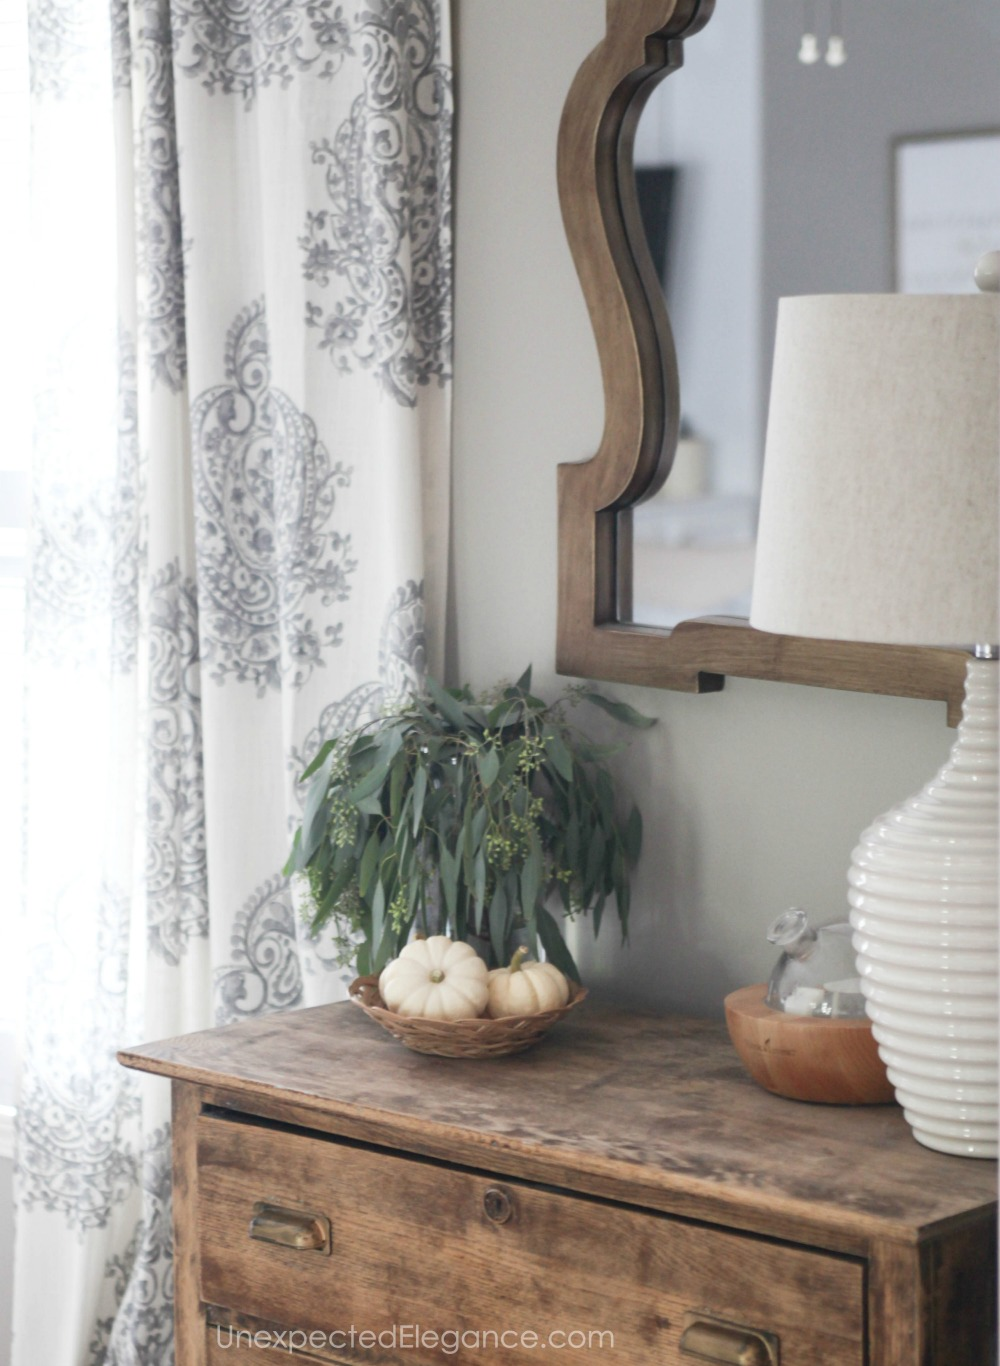 Autumn decor ideas that are simple and easy!